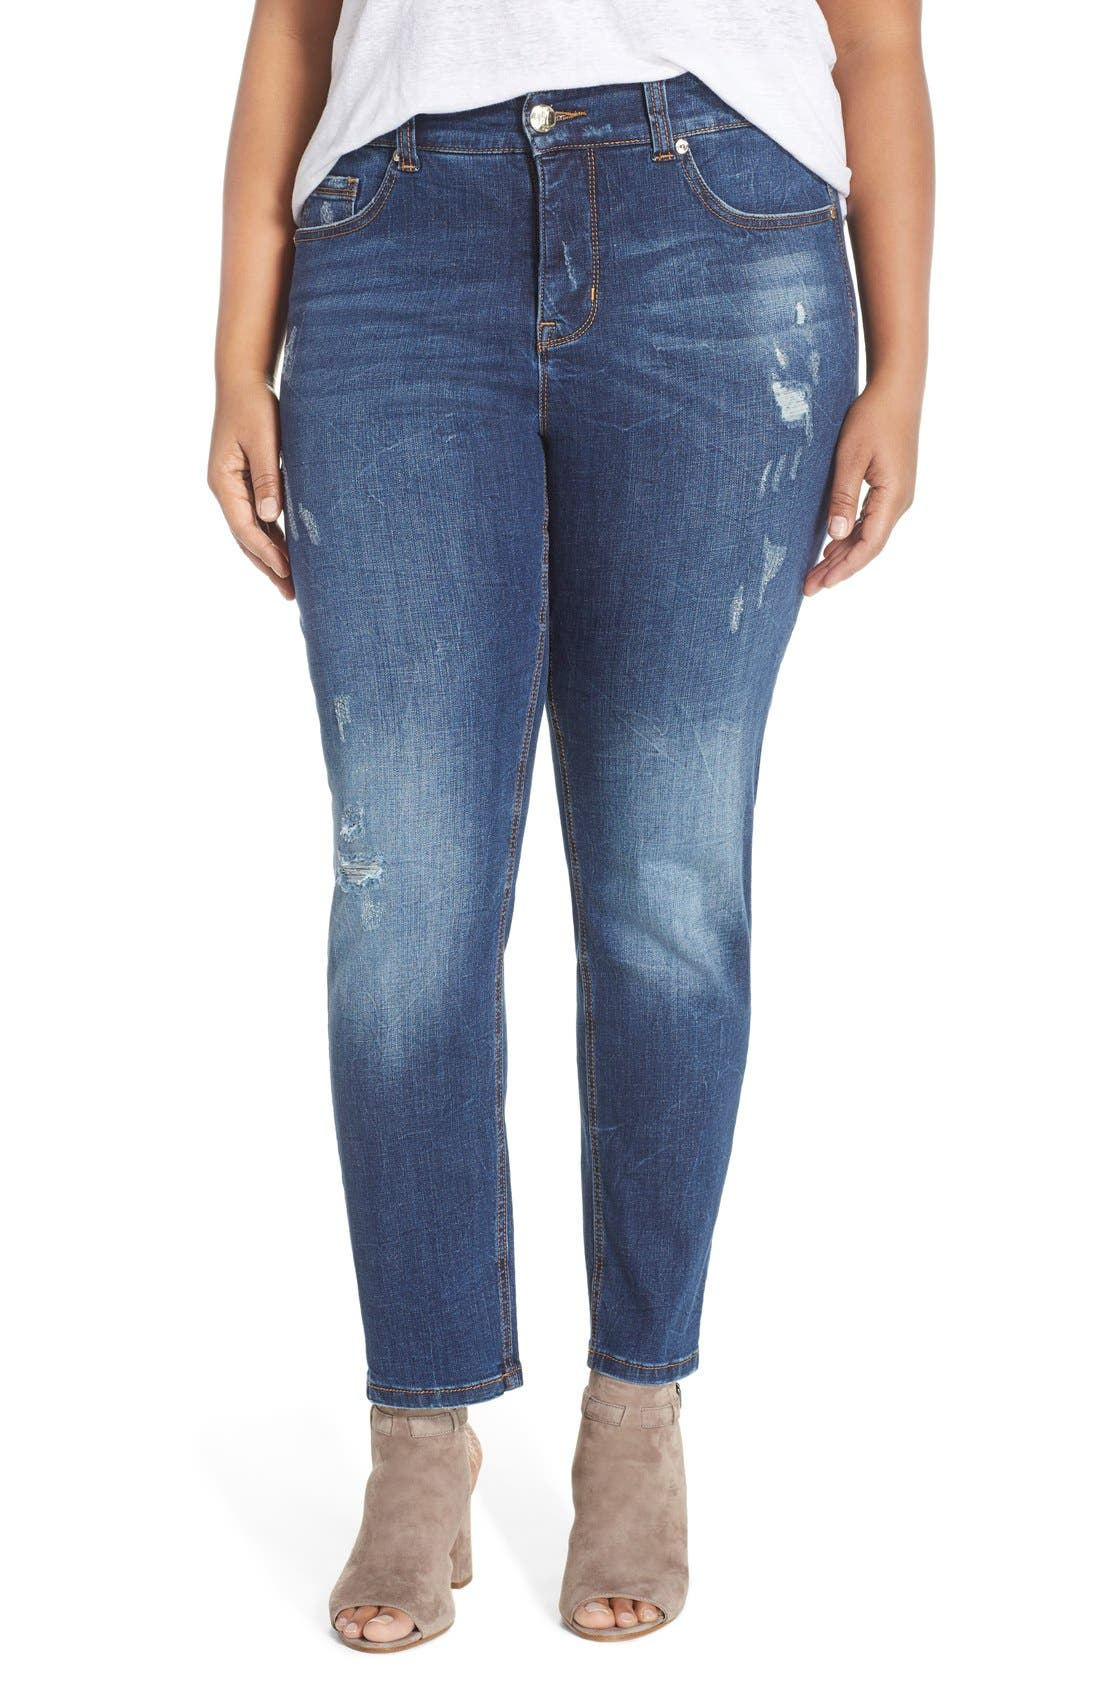 Alternate Image 1 Selected - Melissa McCarthy Seven7 Stretch Straight Leg Jeans (Bonafide) (Plus Size)